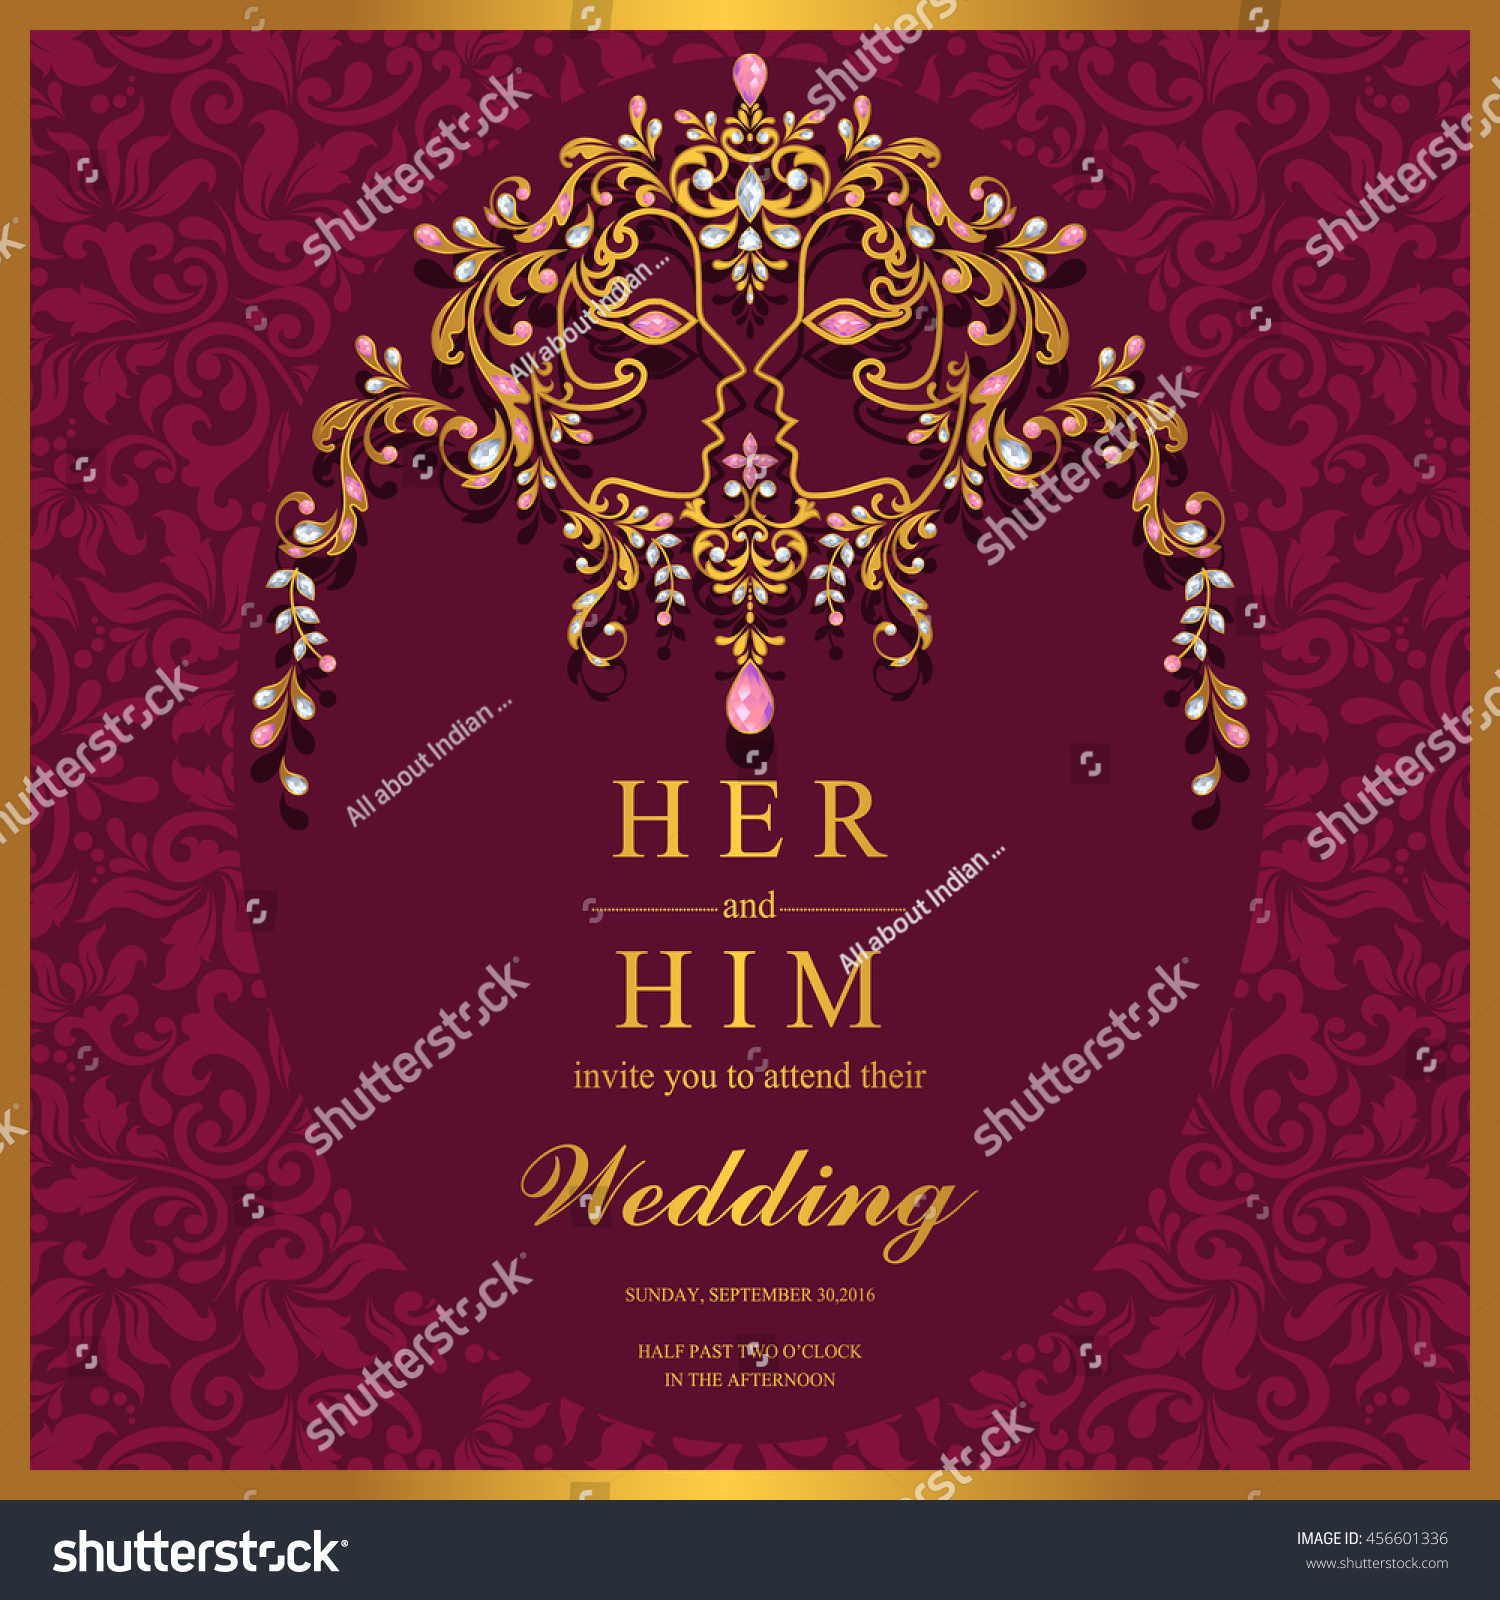 Wedding Invitation Card Abstract Background Islam Stock Vector HD ...